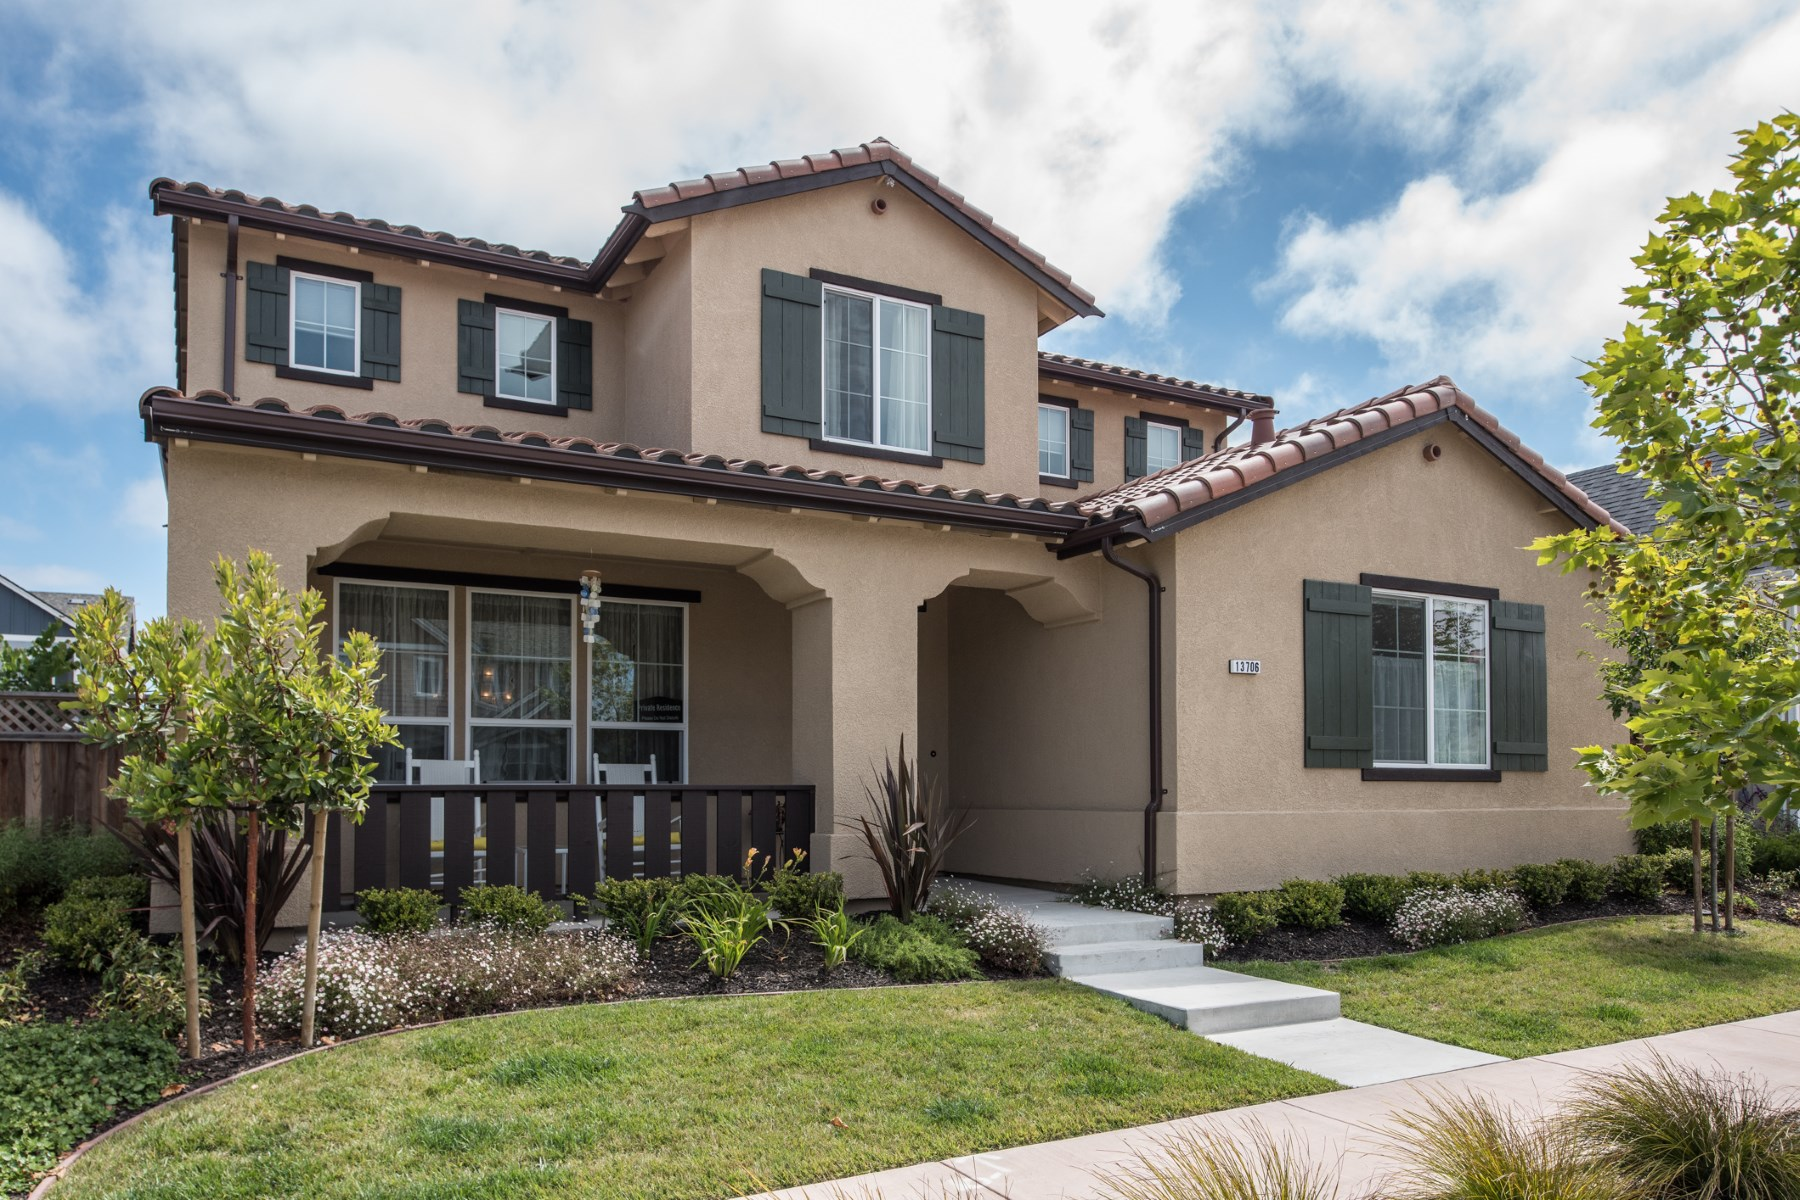 Single Family Home for Sale at New Mediterranean Home 13706 Sherman Boulevard Marina, California, 93933 United States